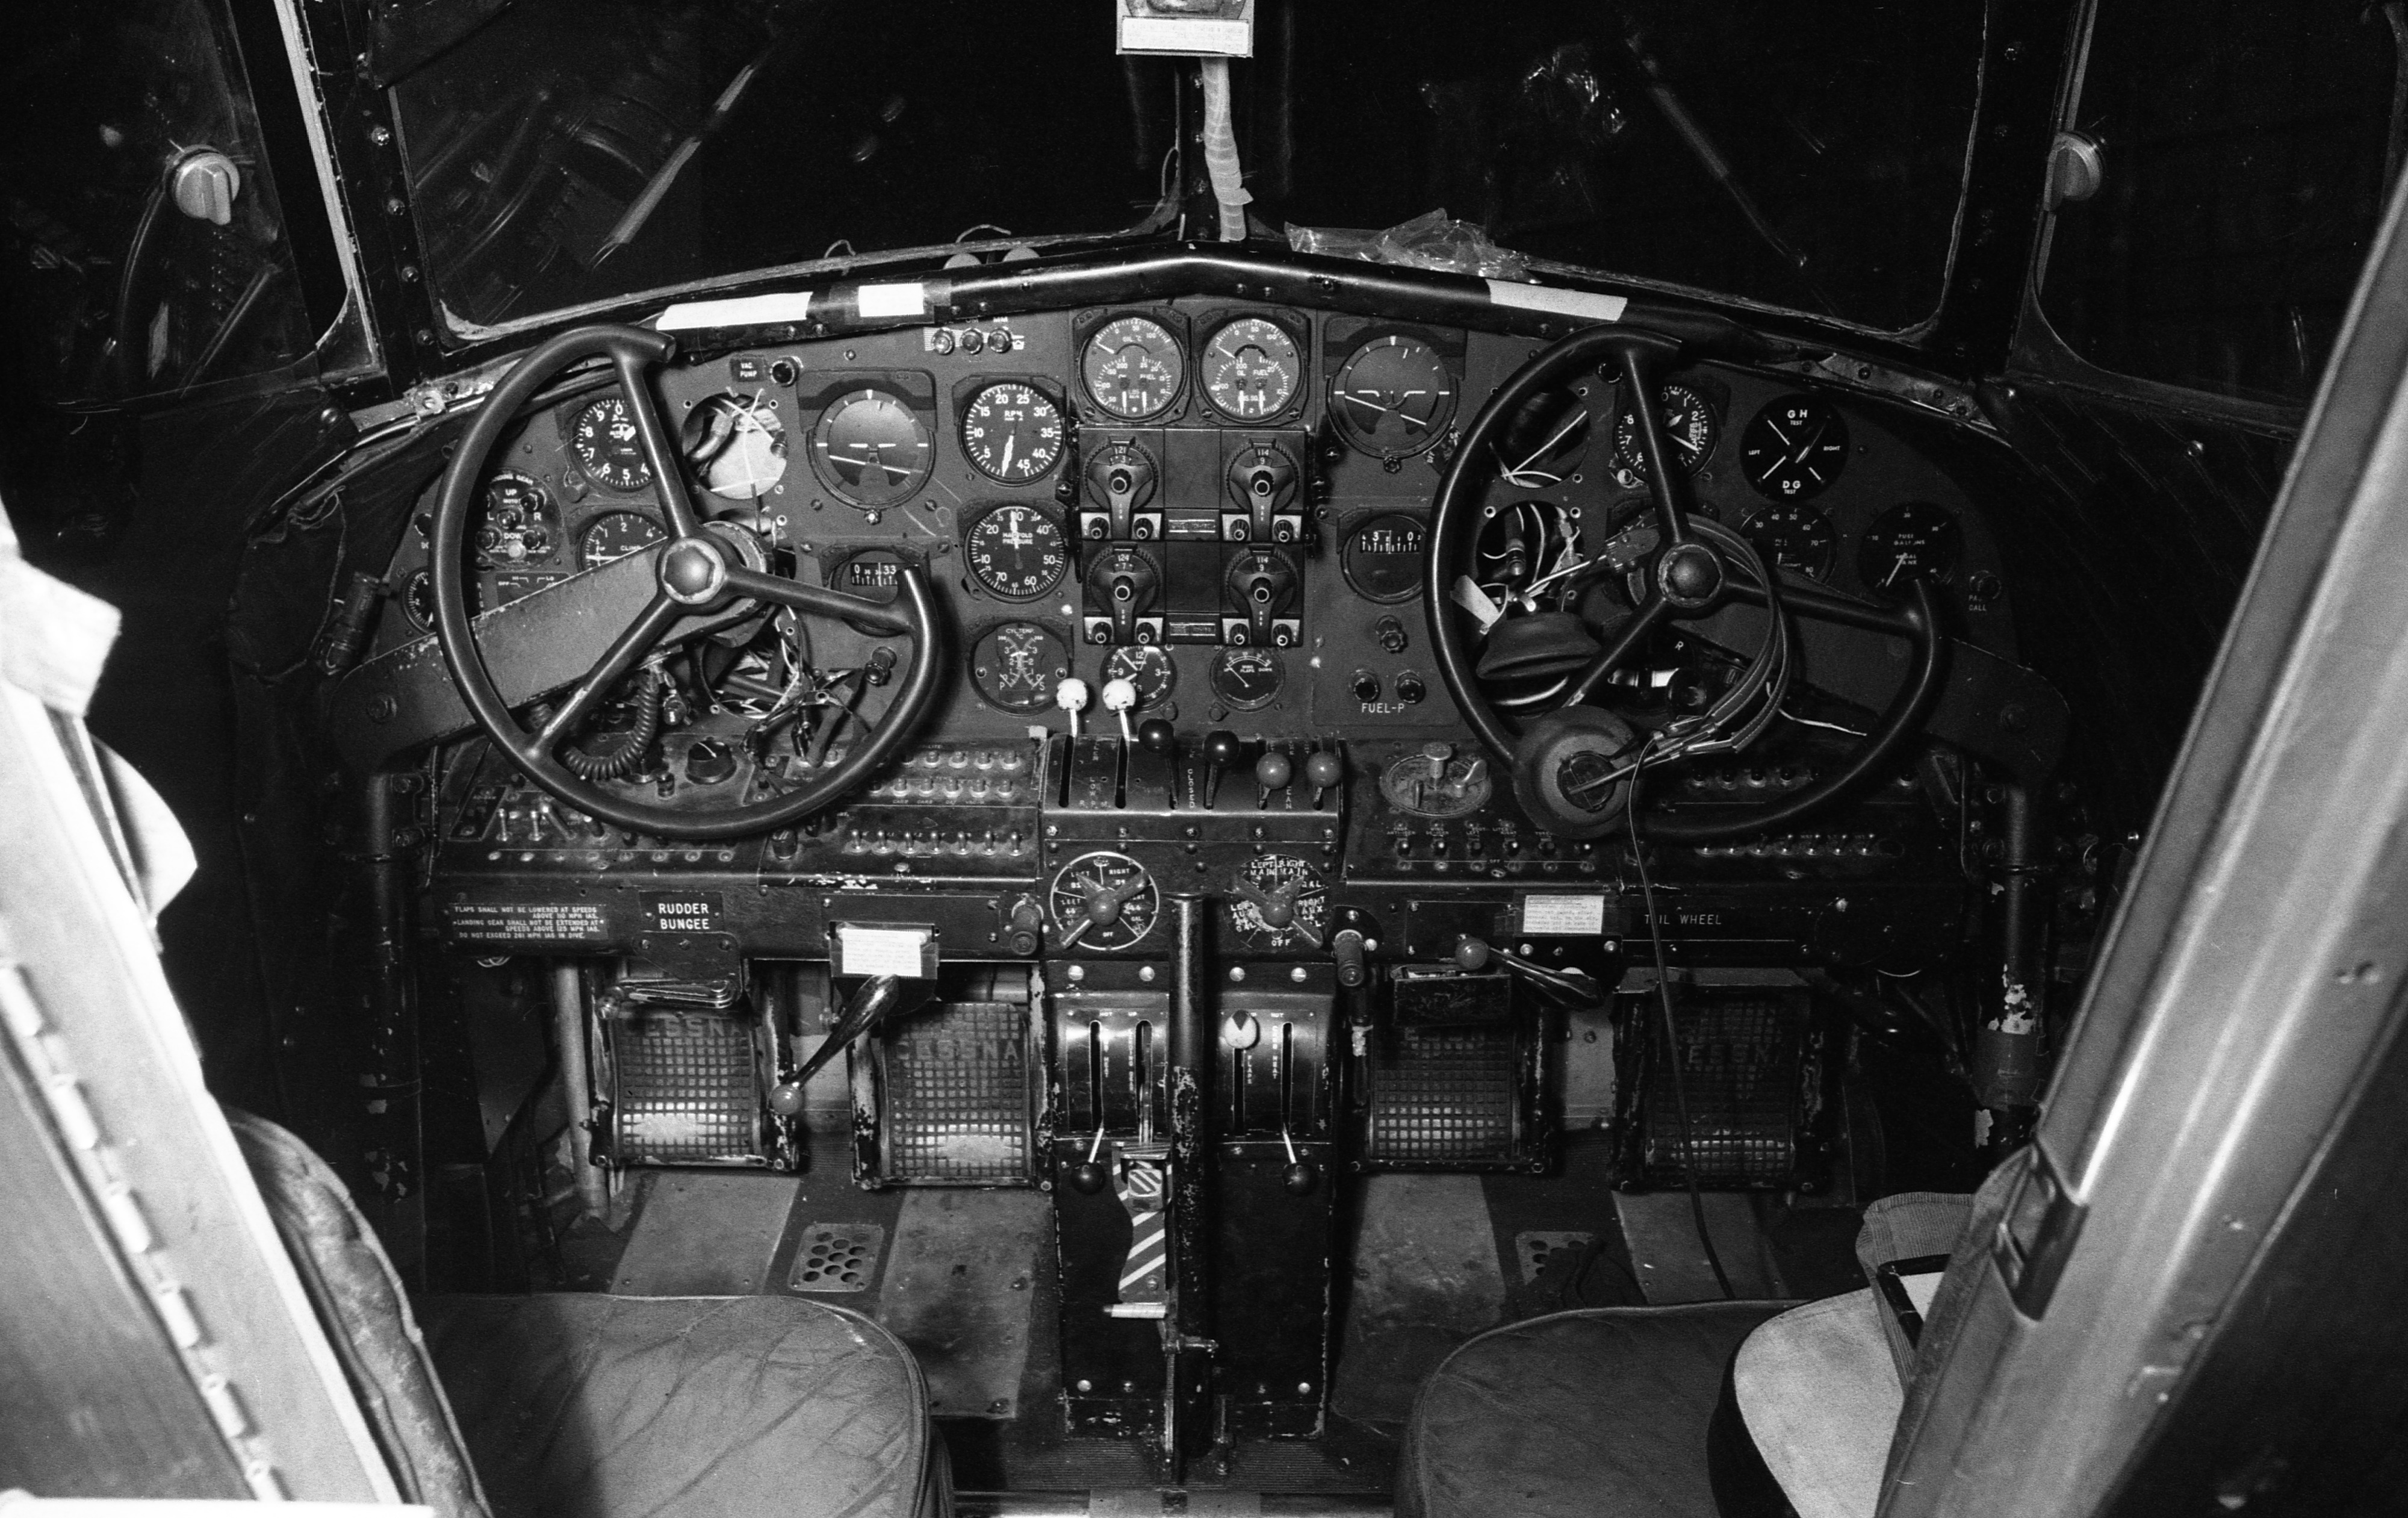 Cockpit of 1937-Vintage Plane for Amelia Earhart Commemorative Flight, May 1967 image